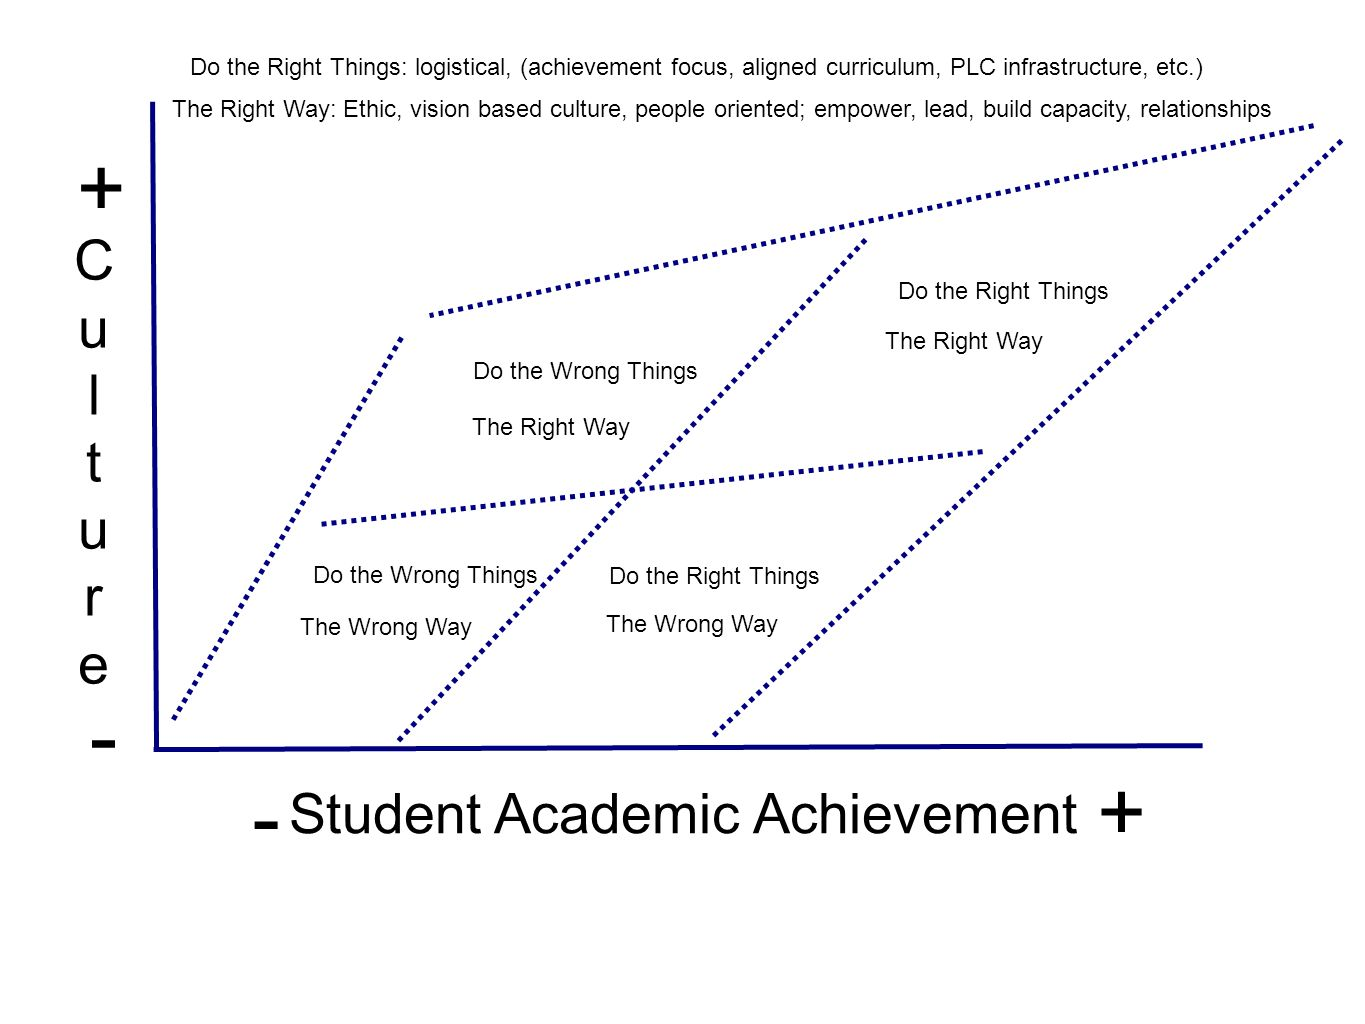 Do the Right Things The Right Way Student Academic Achievement Do the Wrong Things The Right Way Do the Right Things The Wrong Way Do the Wrong Things